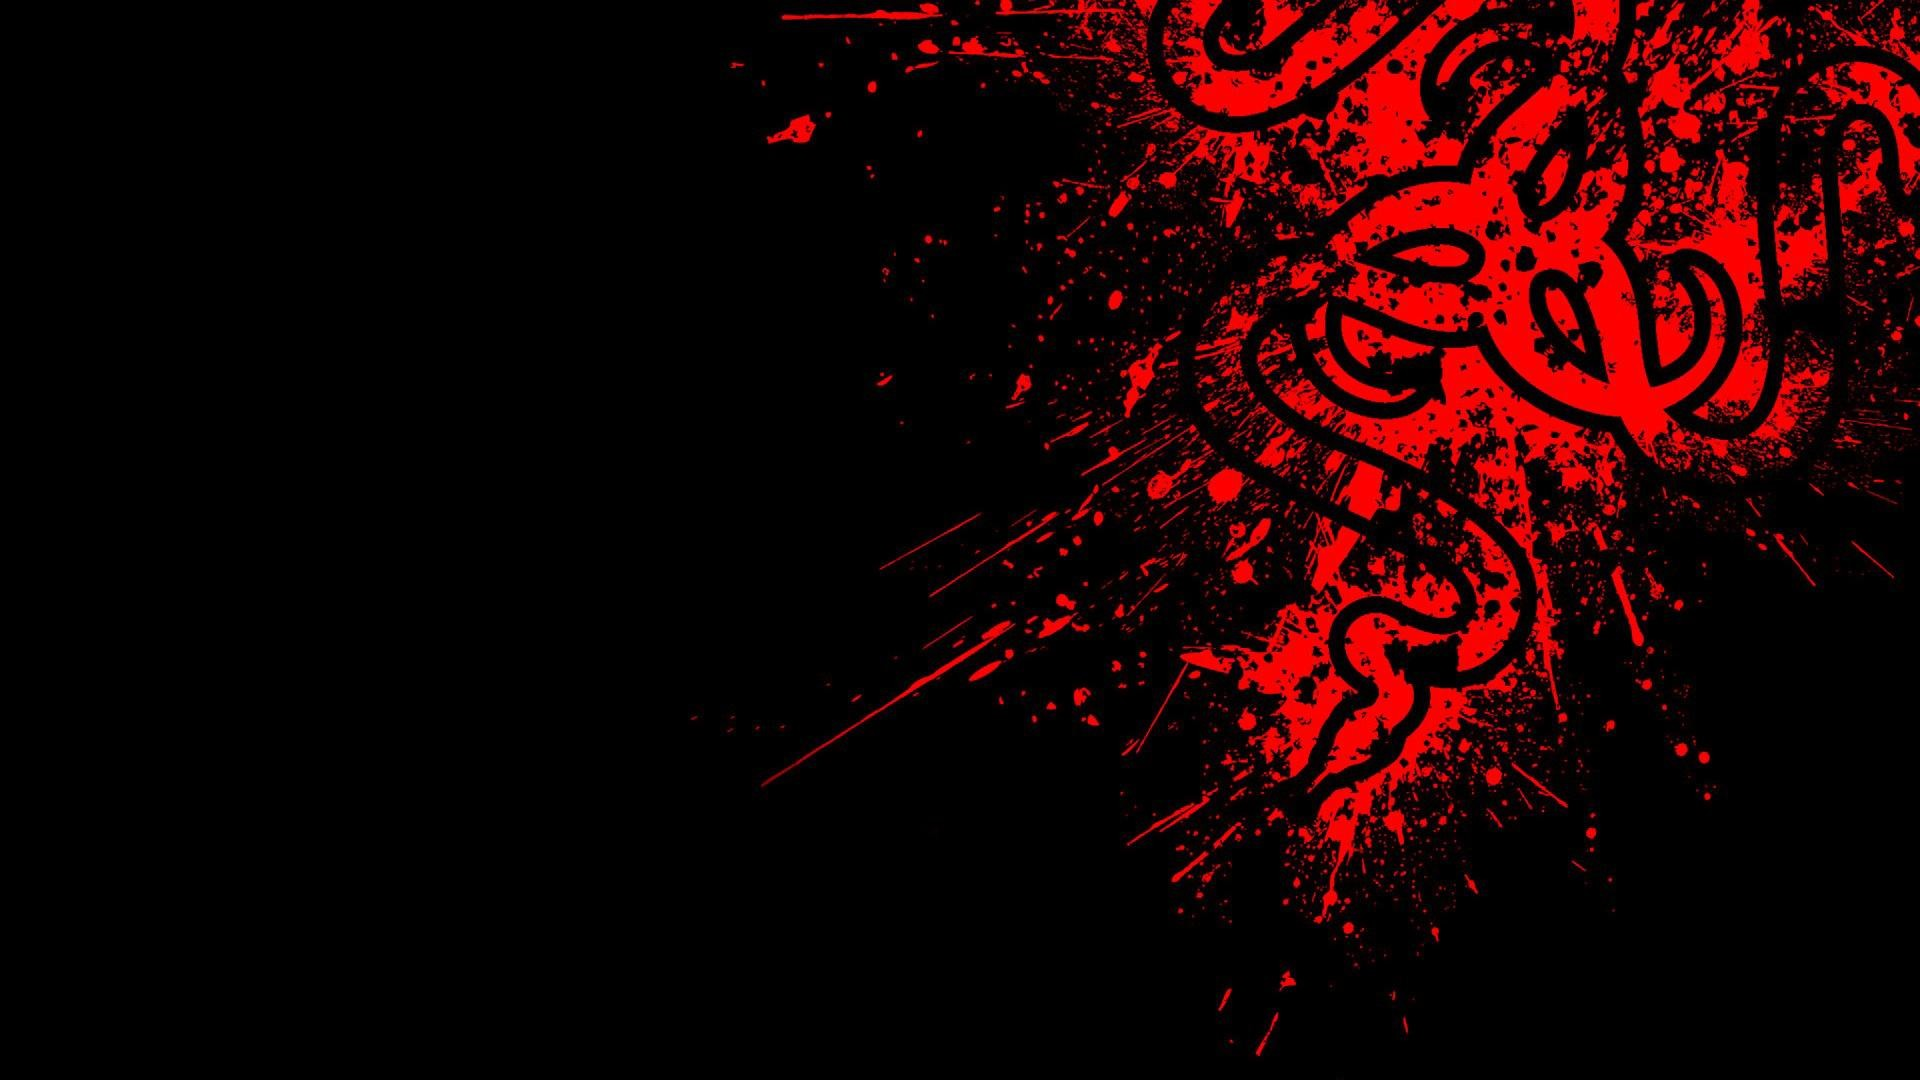 1920x1080 red wallpaper #164